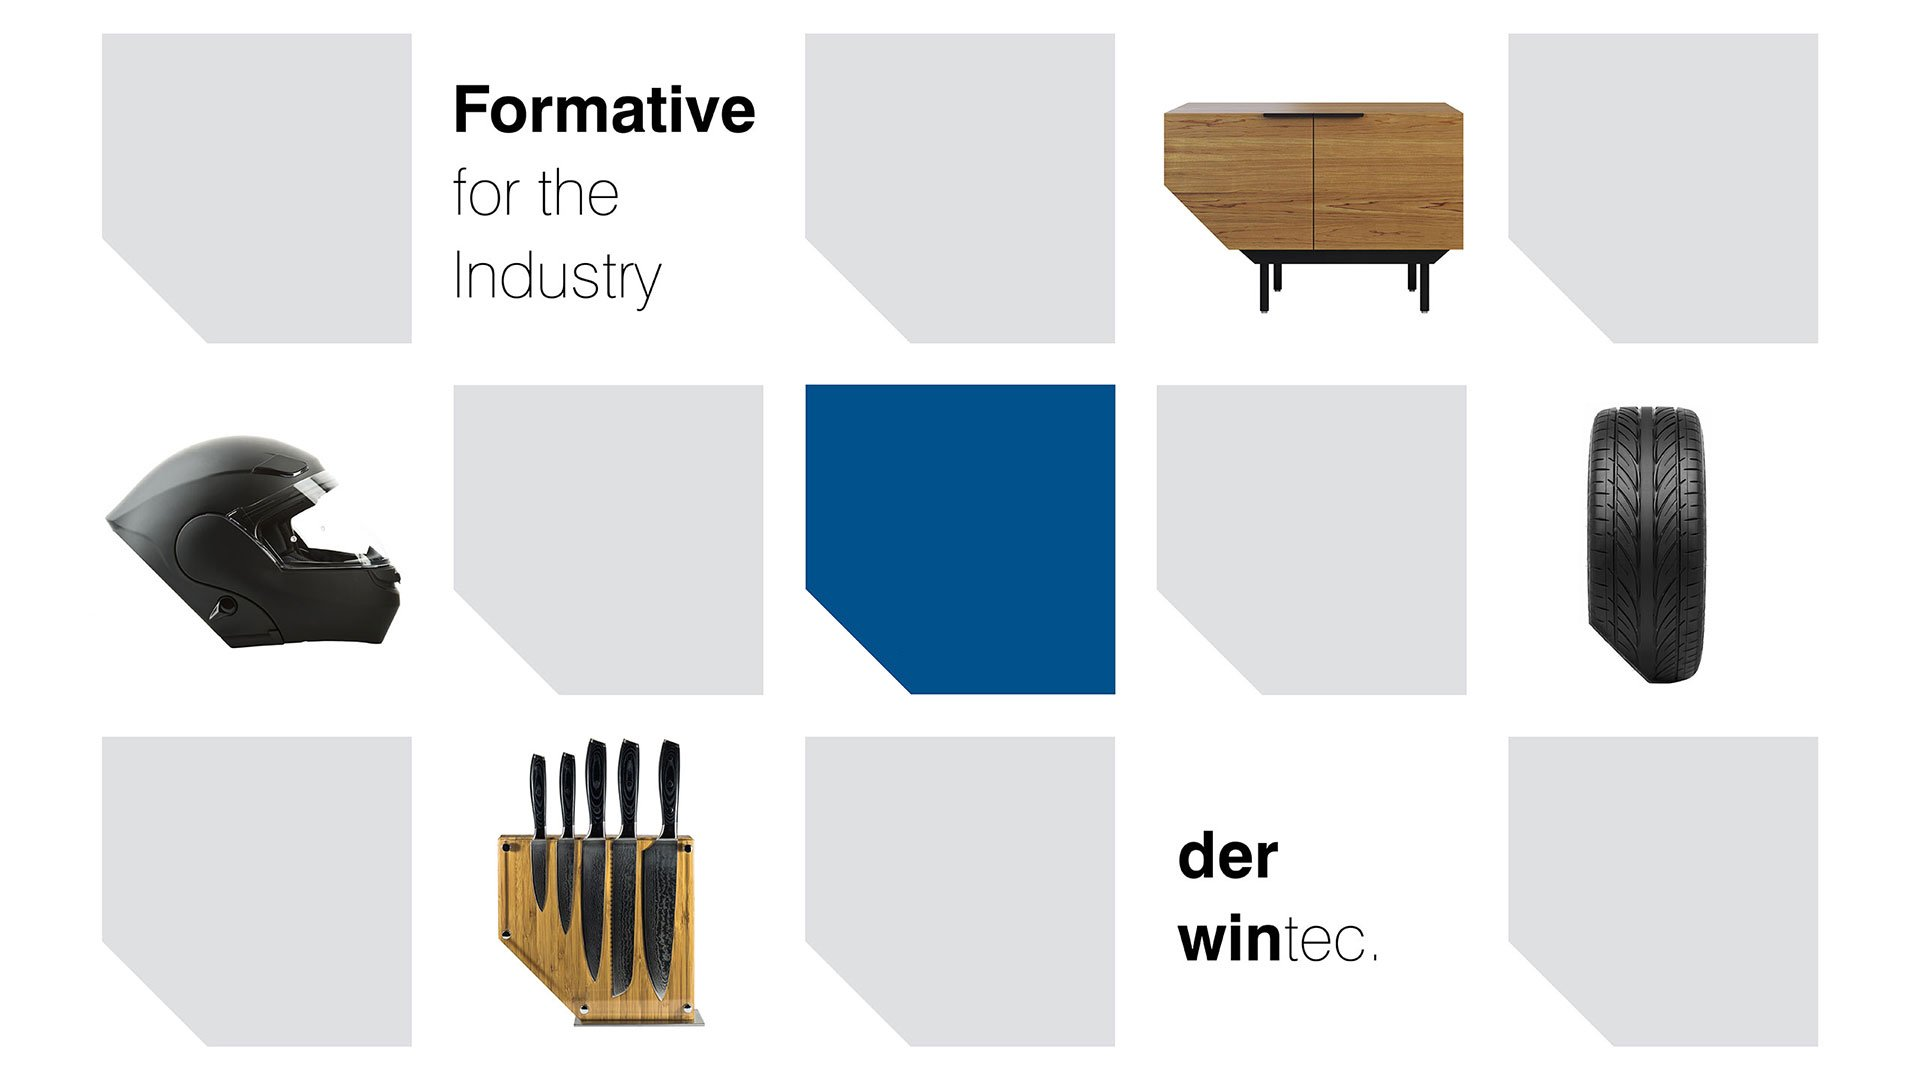 der wintec. Formative for the Industry.